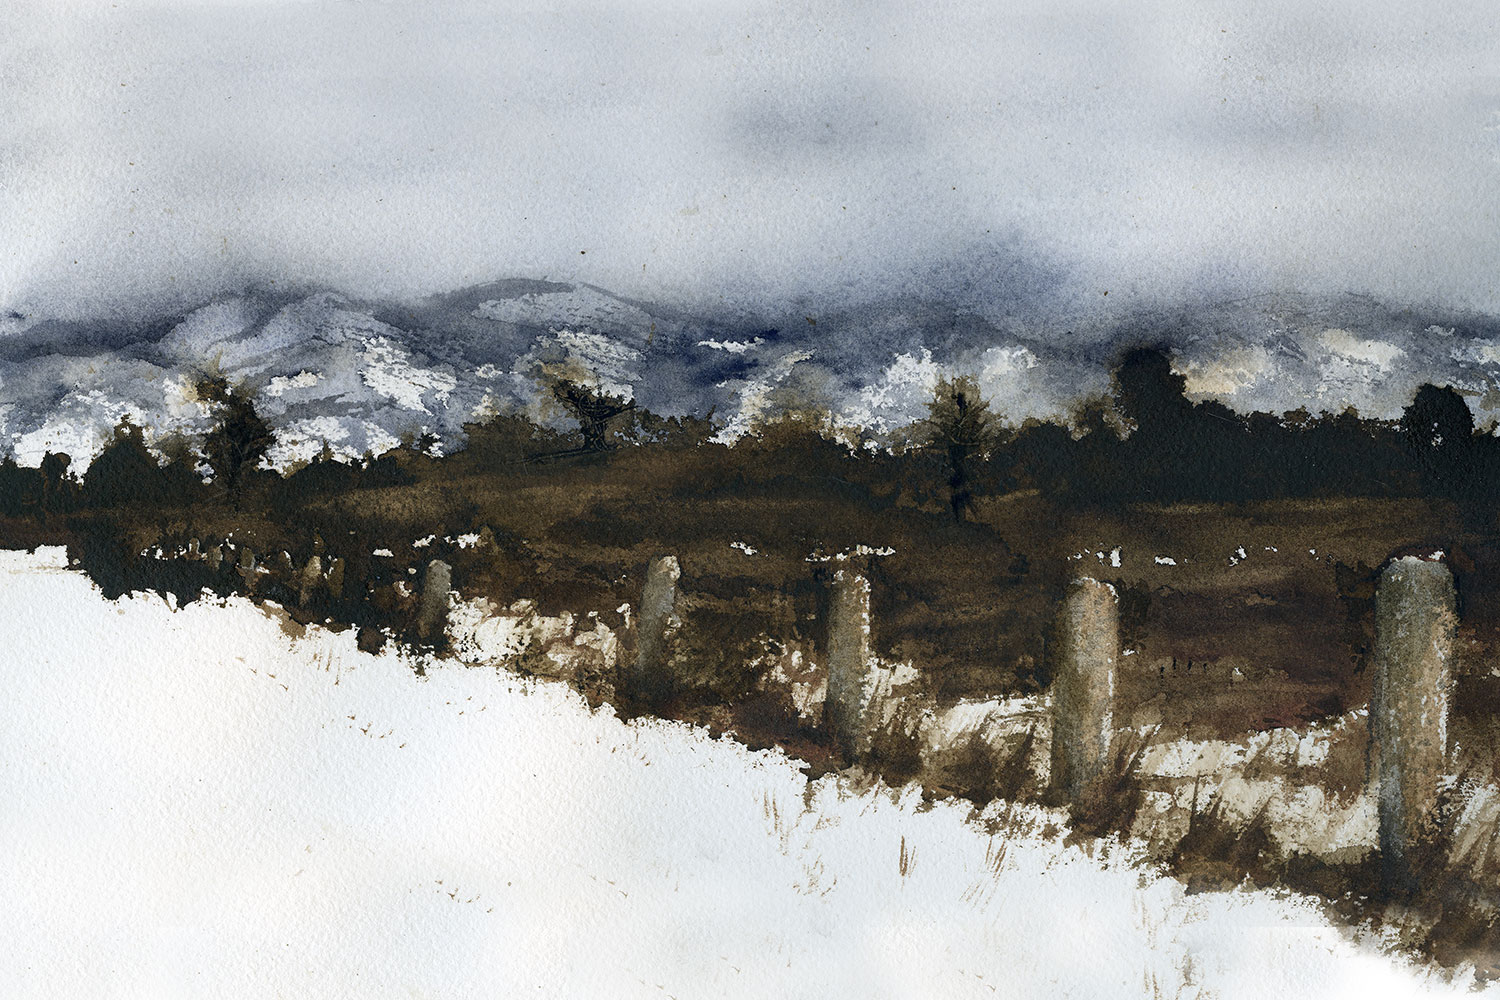 Header painting. Snowy field painting with distant mountains.